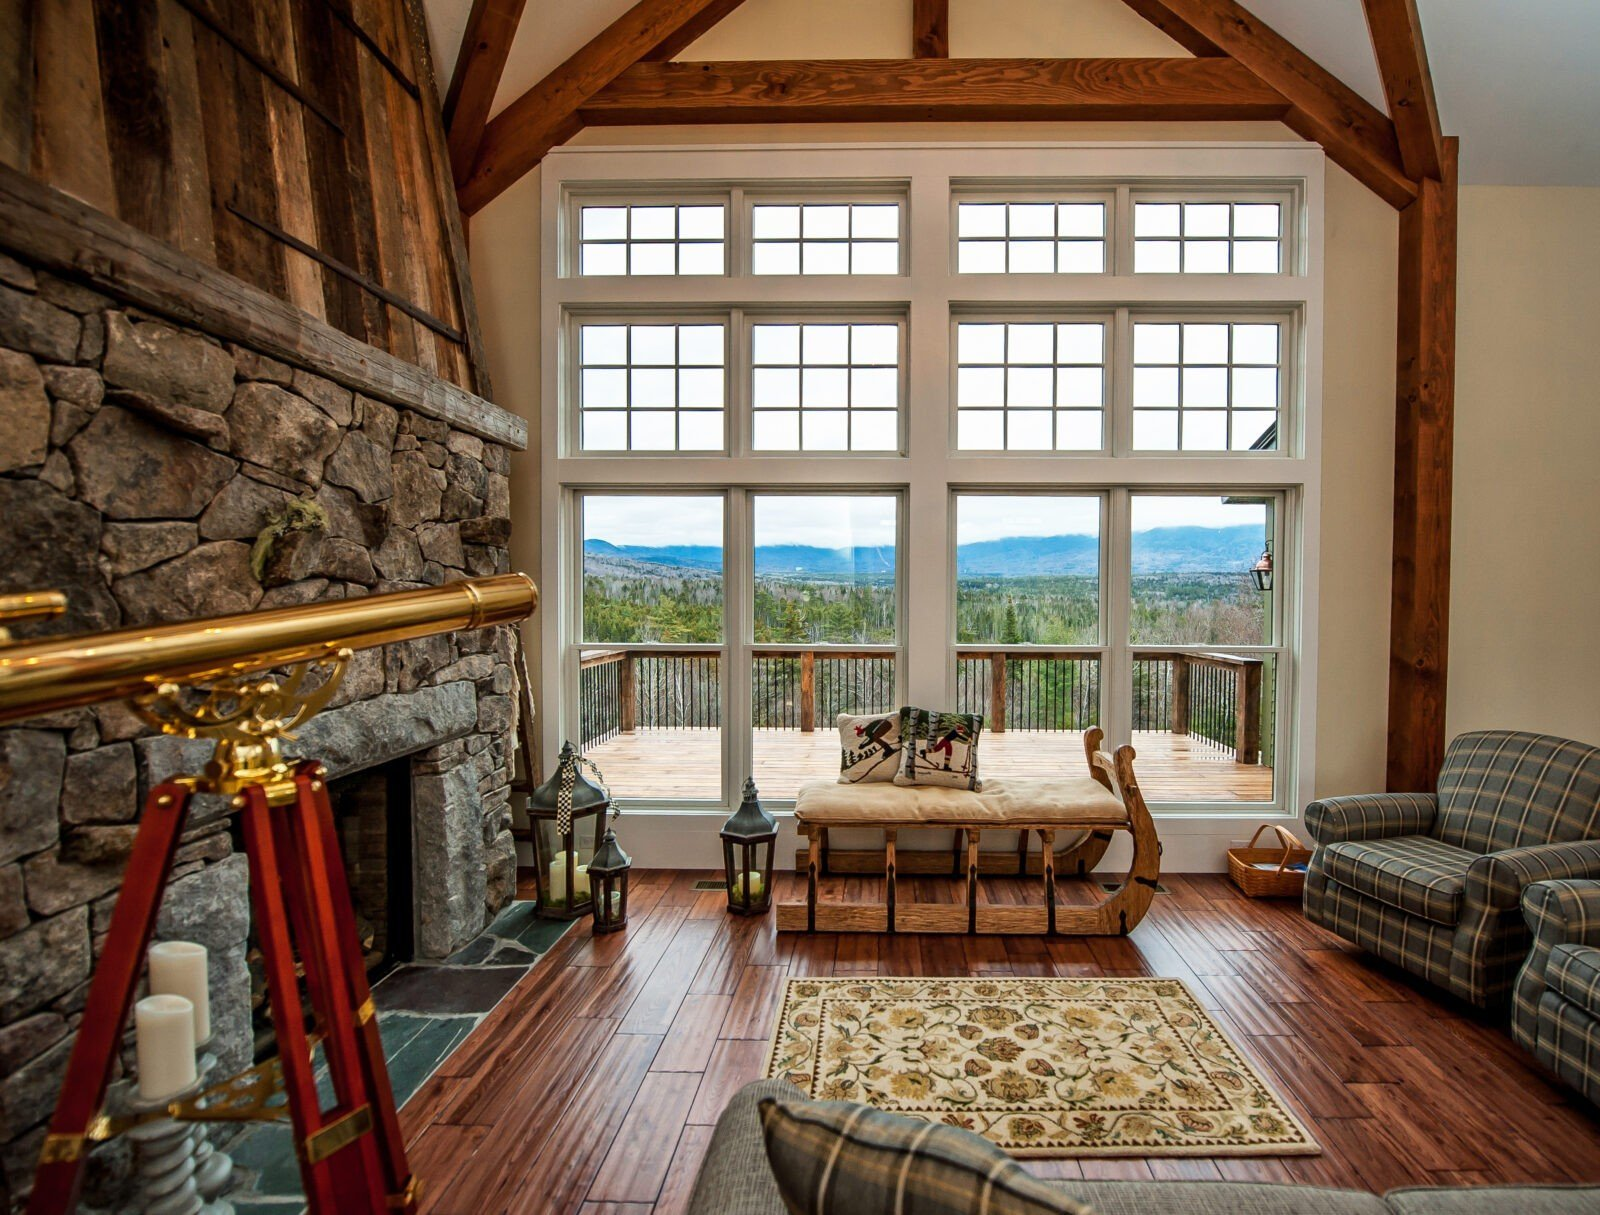 Picturesque Sale Tag Archives Barn Yankee Barn Windows Barn Windows Yankee Barn Homes Yankee Barn Homes Reviews Yankee Barn Homes houzz-03 Yankee Barn Homes